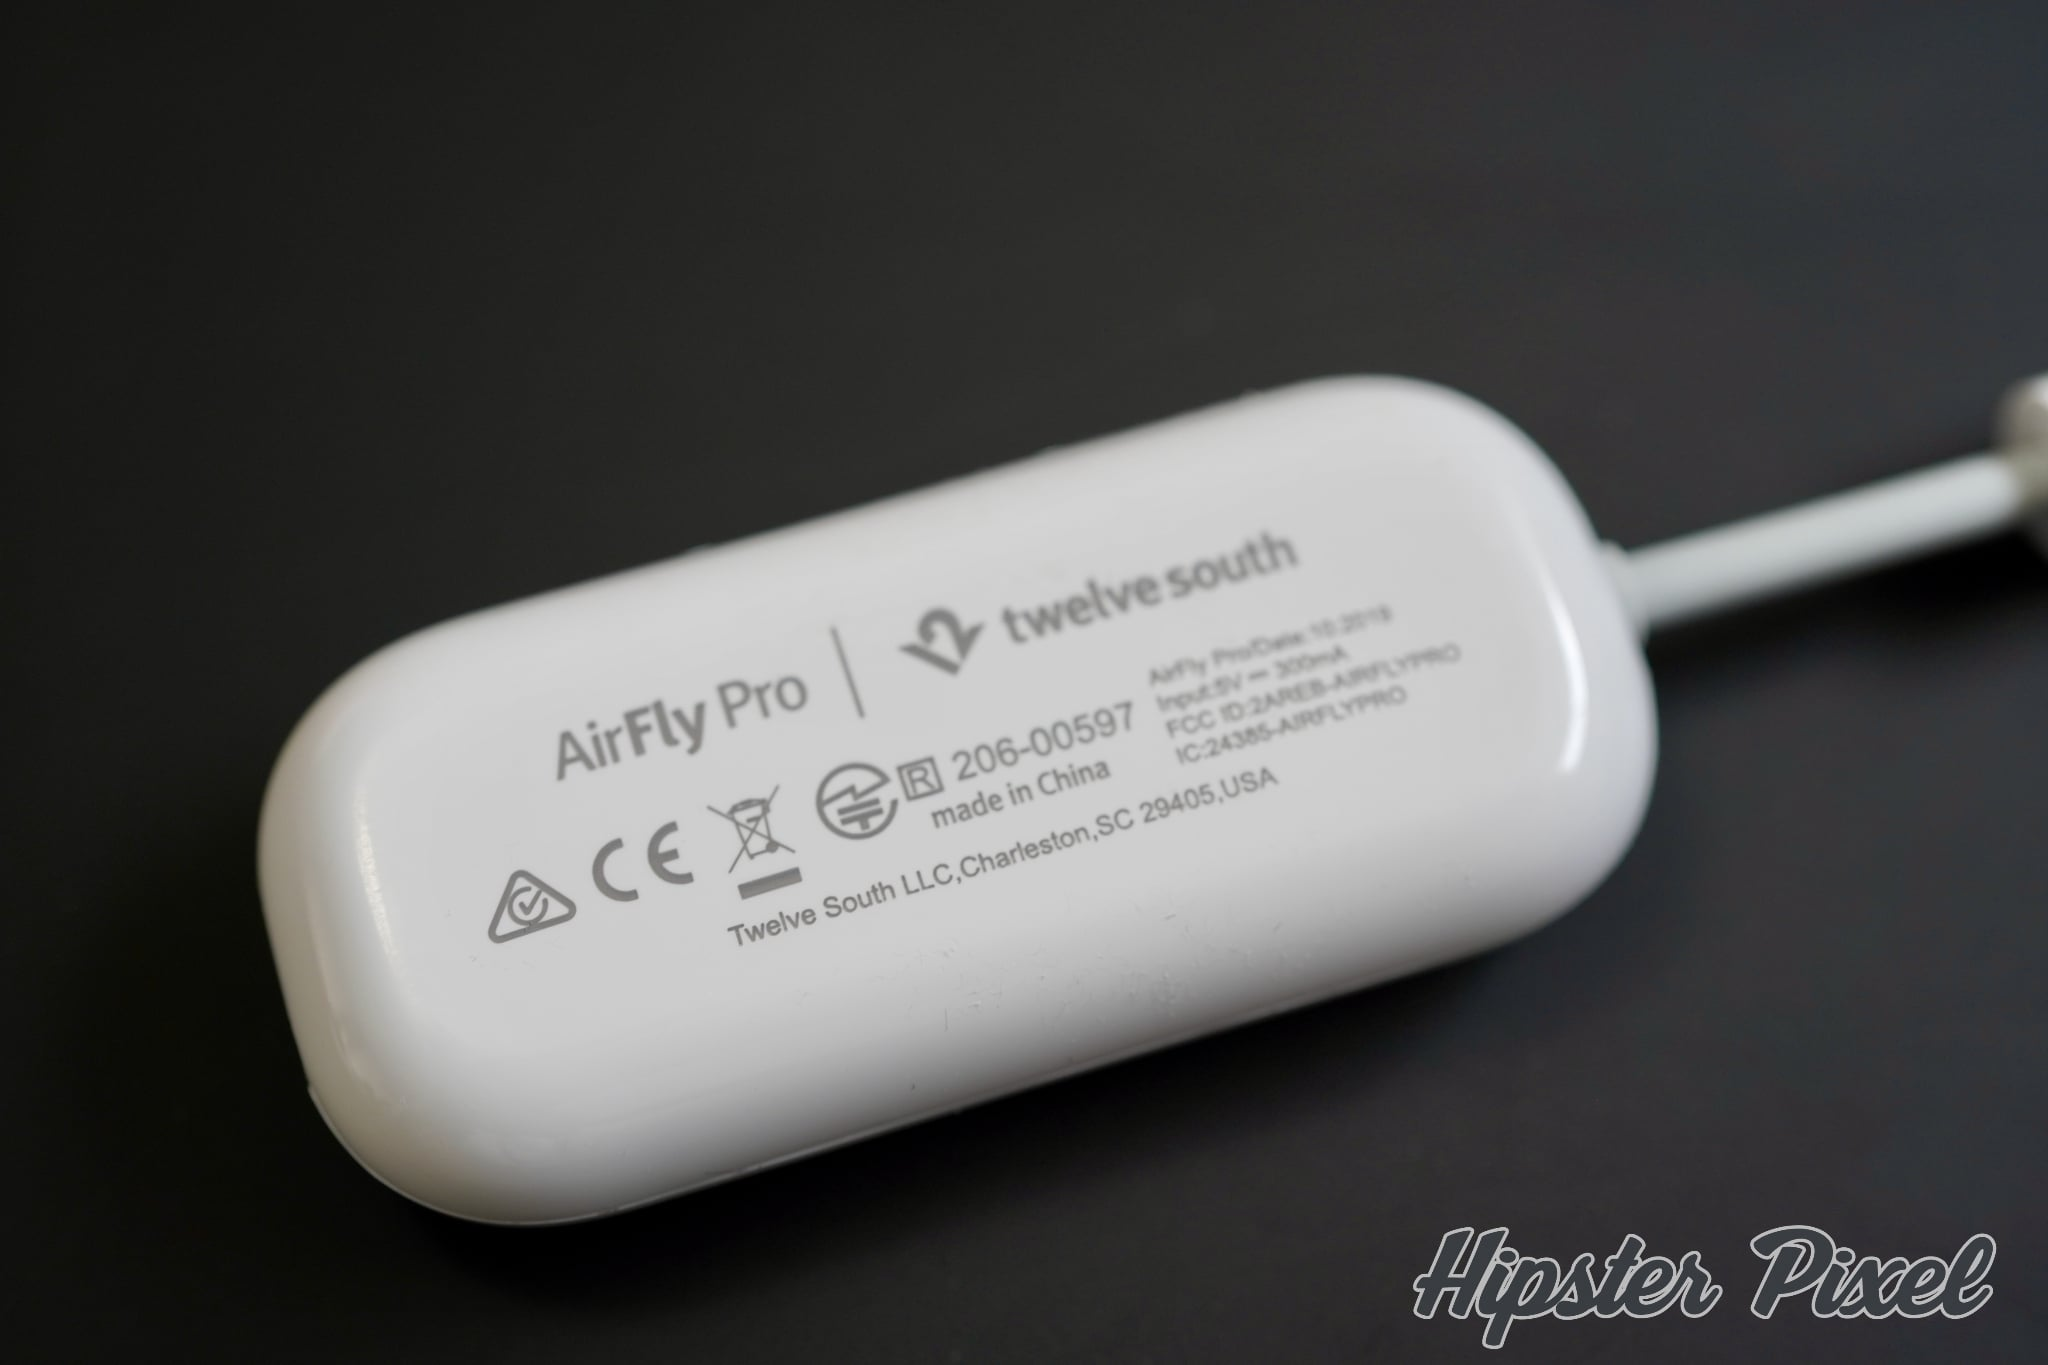 AirFly Pro, up close and personal